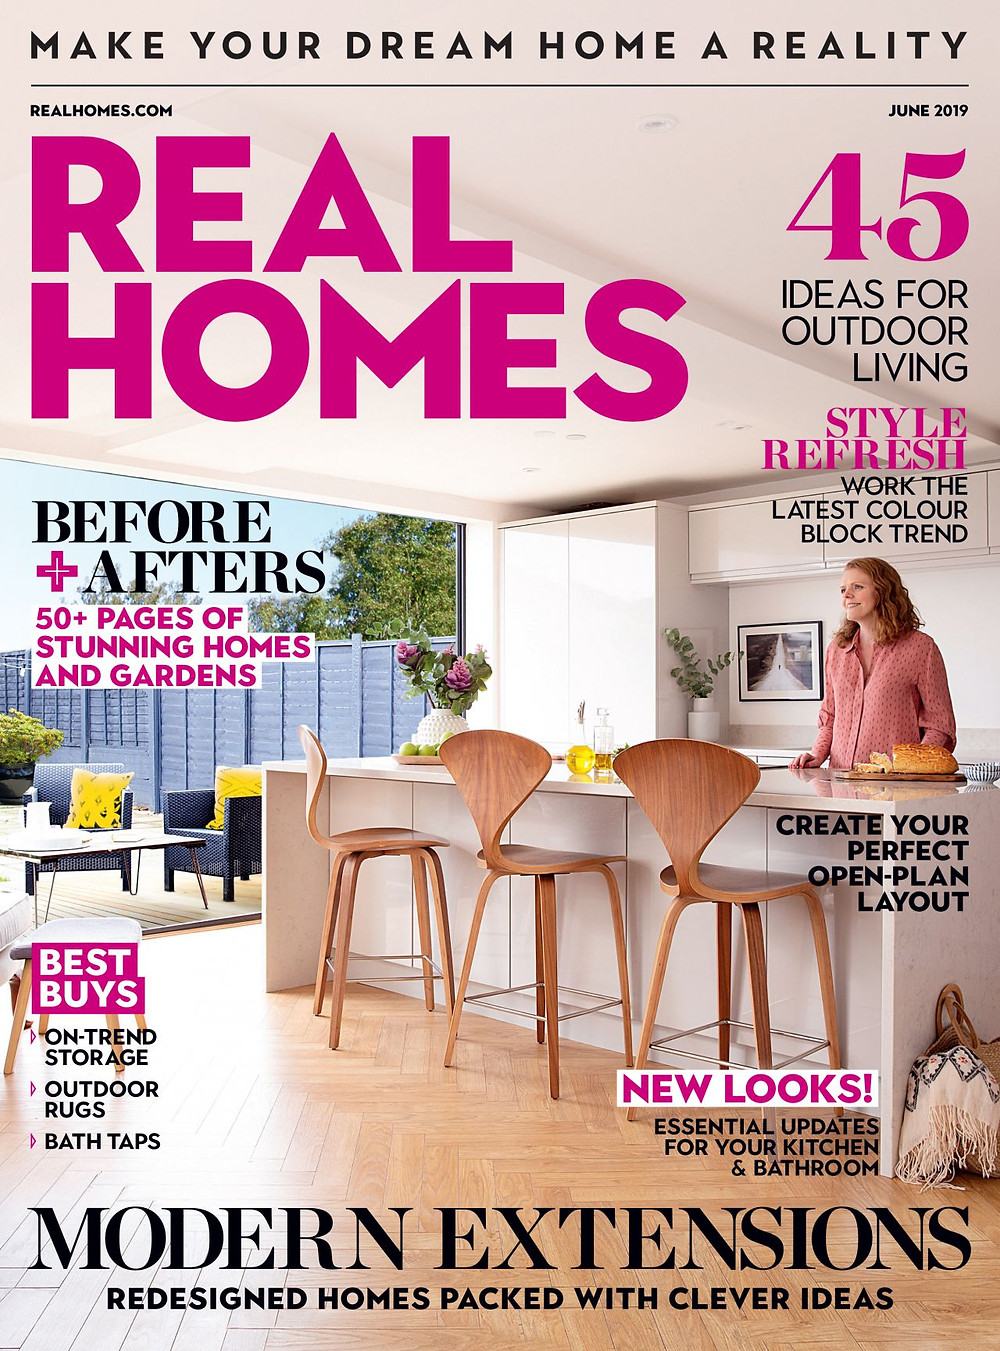 Real Homes June 2019 edition